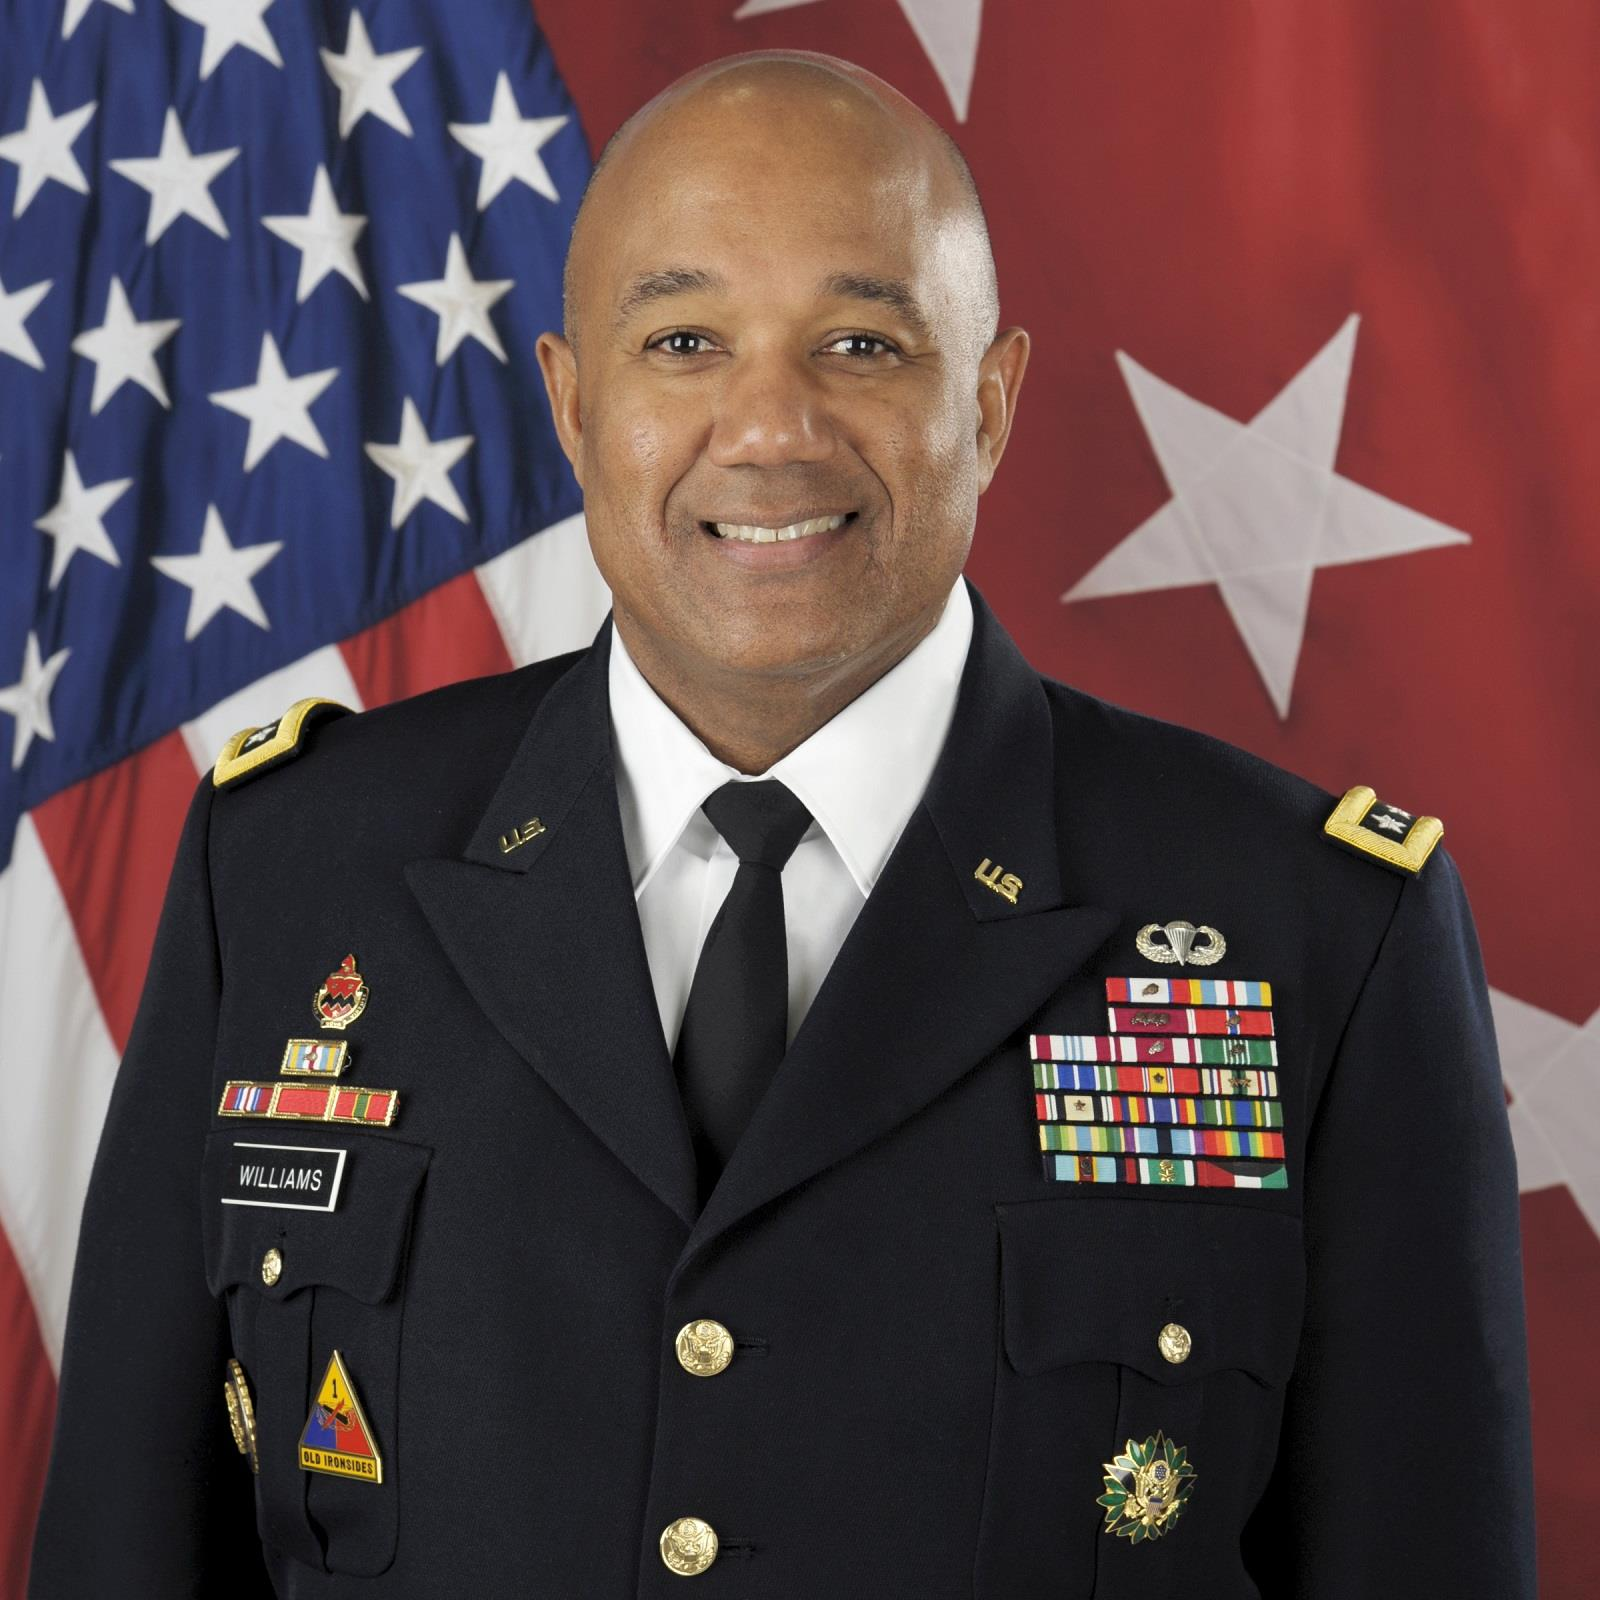 LTG_Darryl_Williams.jpg